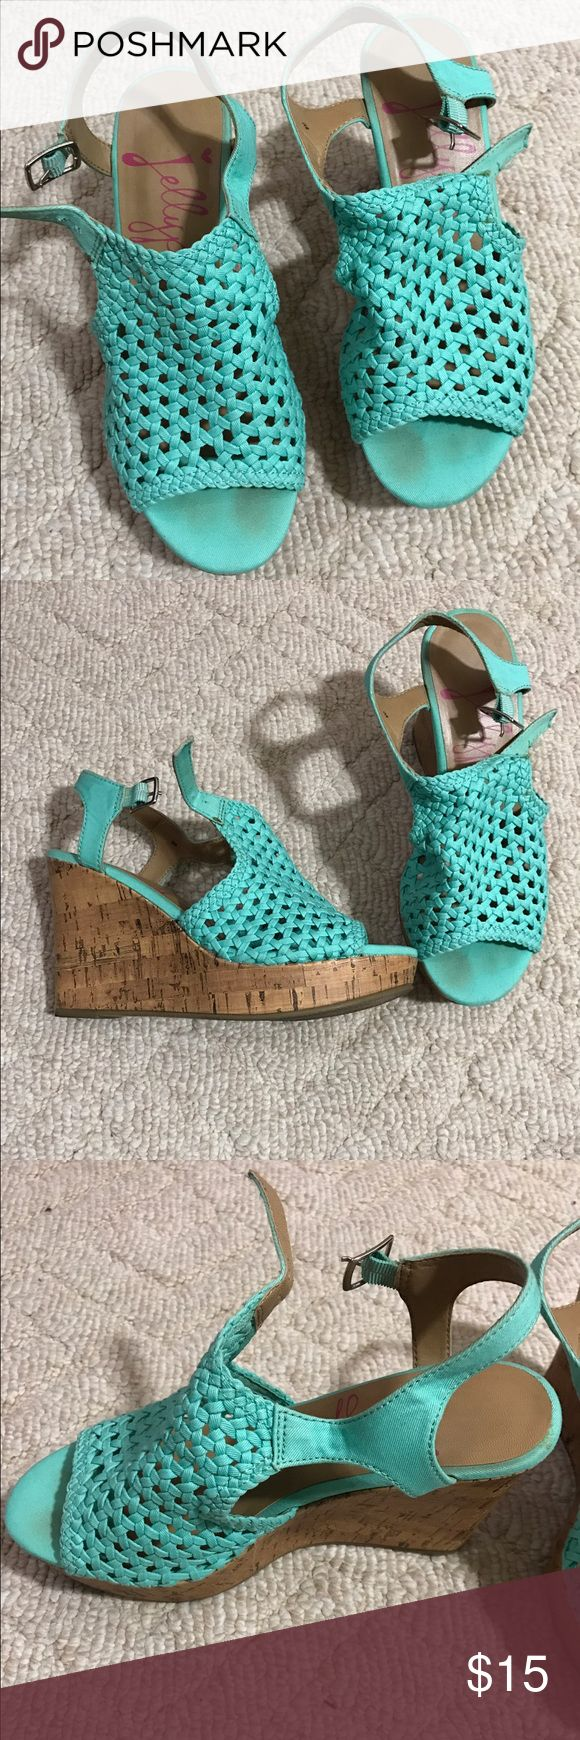 """Jellypop wedges, size 8, color is called """"Rita"""" Jellypop wedges Jellypop Shoes Wedges"""